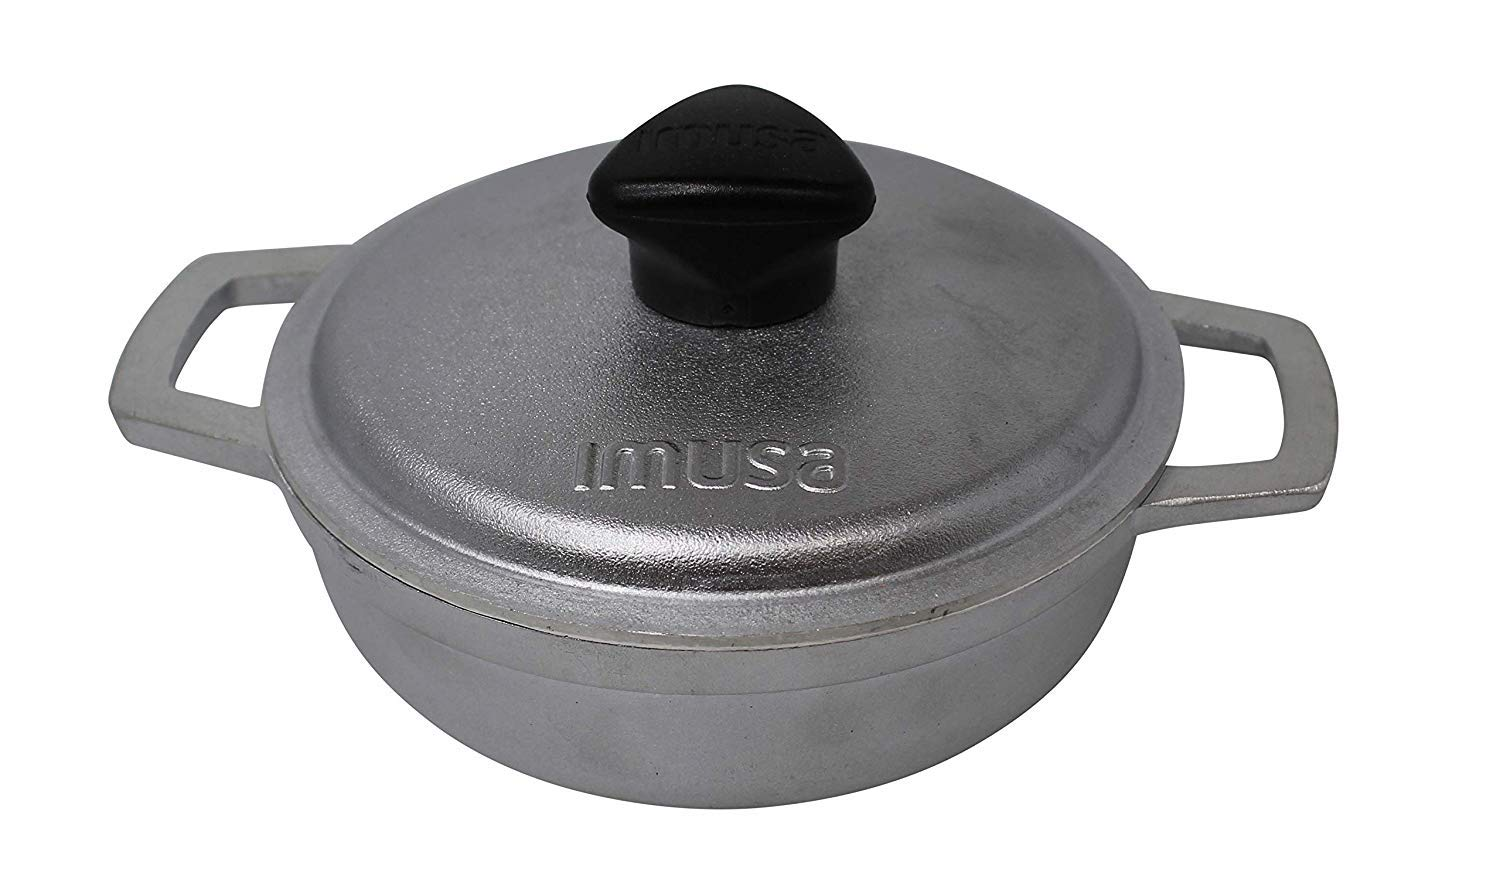 IMUSA USA GAU-80560 0.7Qt Traditional Colombian Mini Caldero Dutch Oven for Cooking and Serving Silver 0.7 Quart